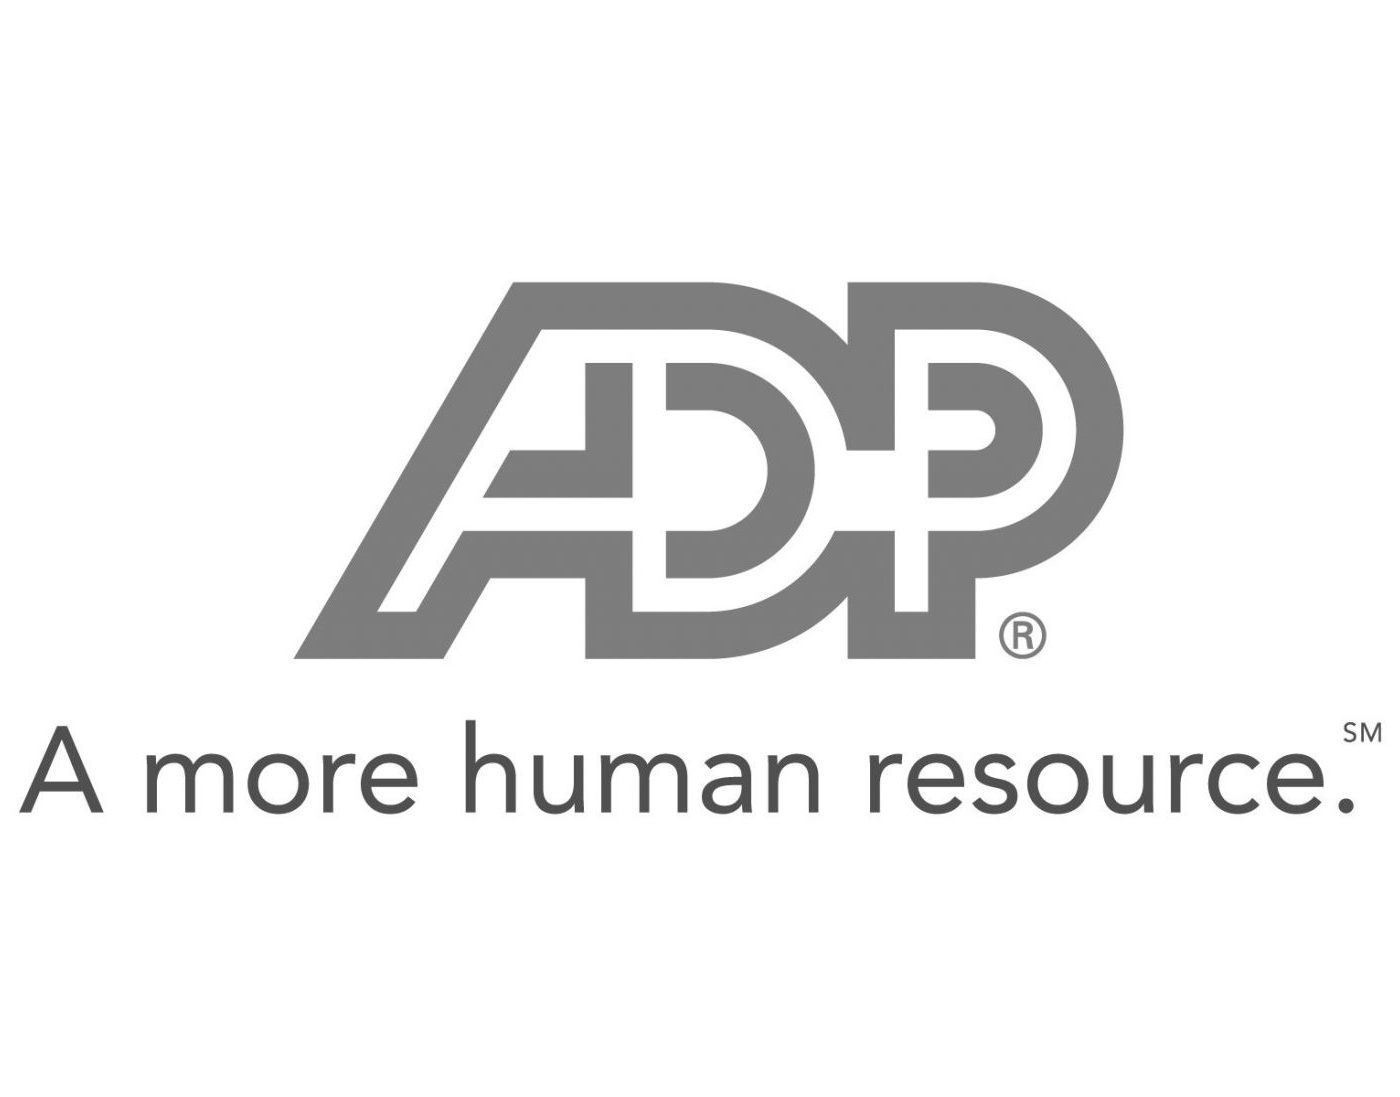 adp-a-mora-human-resource-png-logo-0